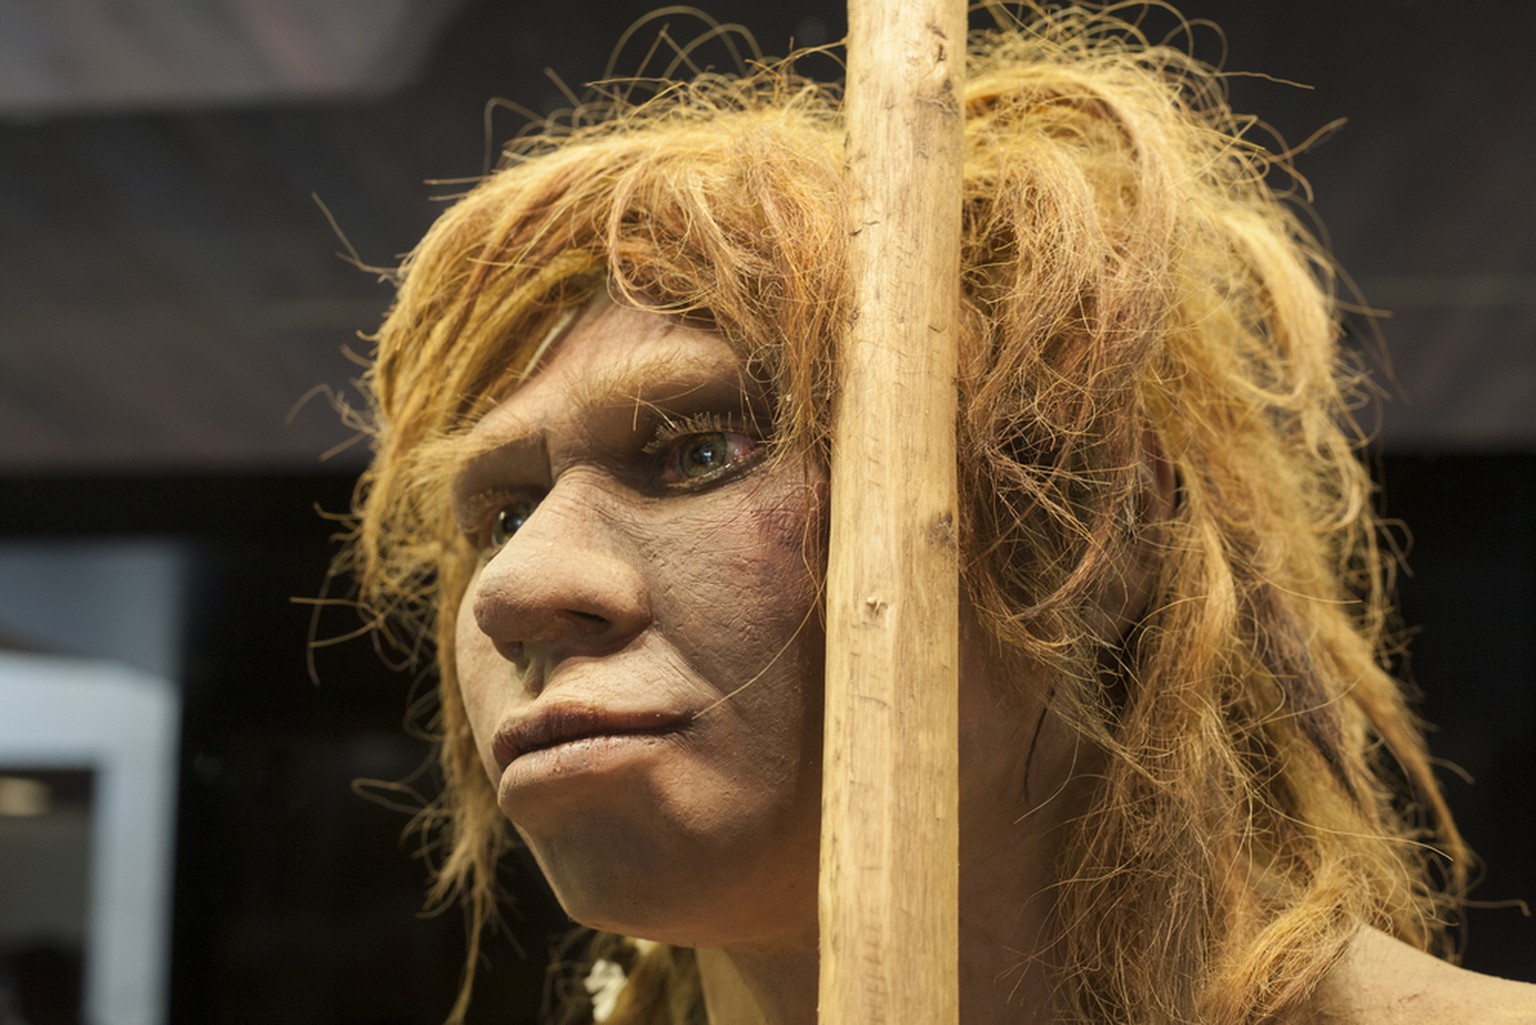 Neandertaler-Frau  Madrid, Spain - November 11, 2017: Life-sized sculpture of Neanderthal female at National Archeological Museum of Madrid